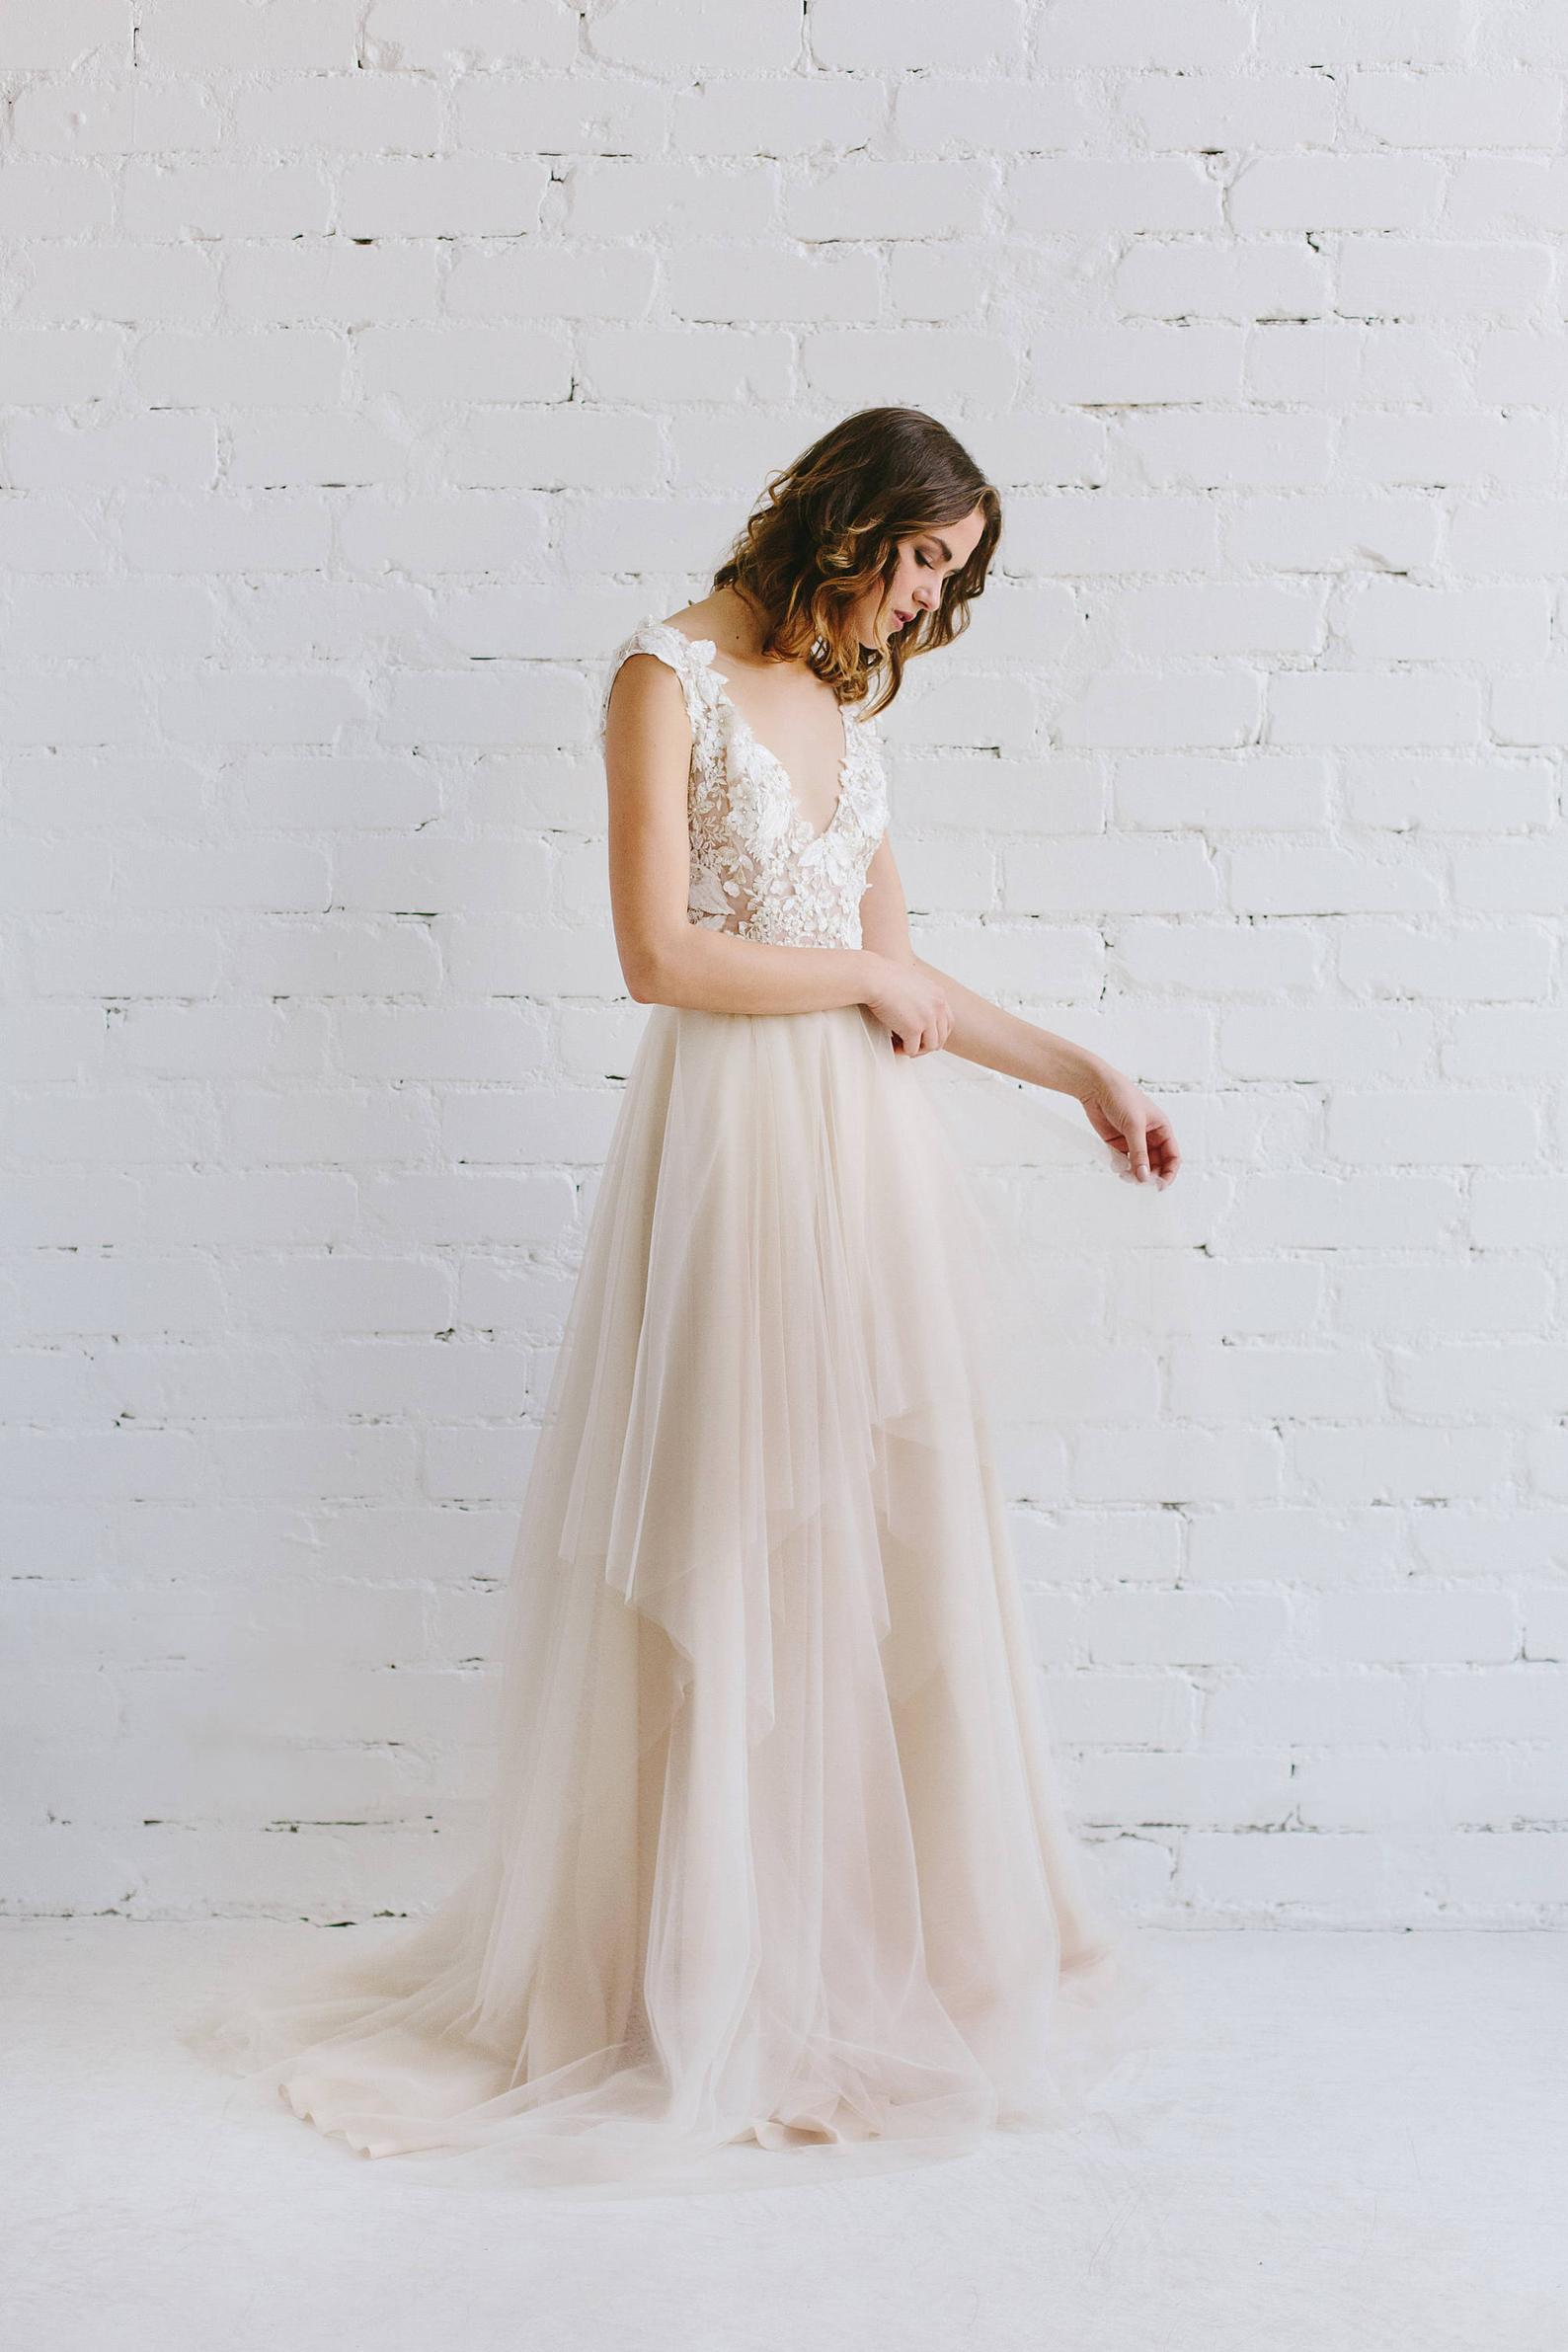 Nude Wedding Gown By Jurgita Bridal